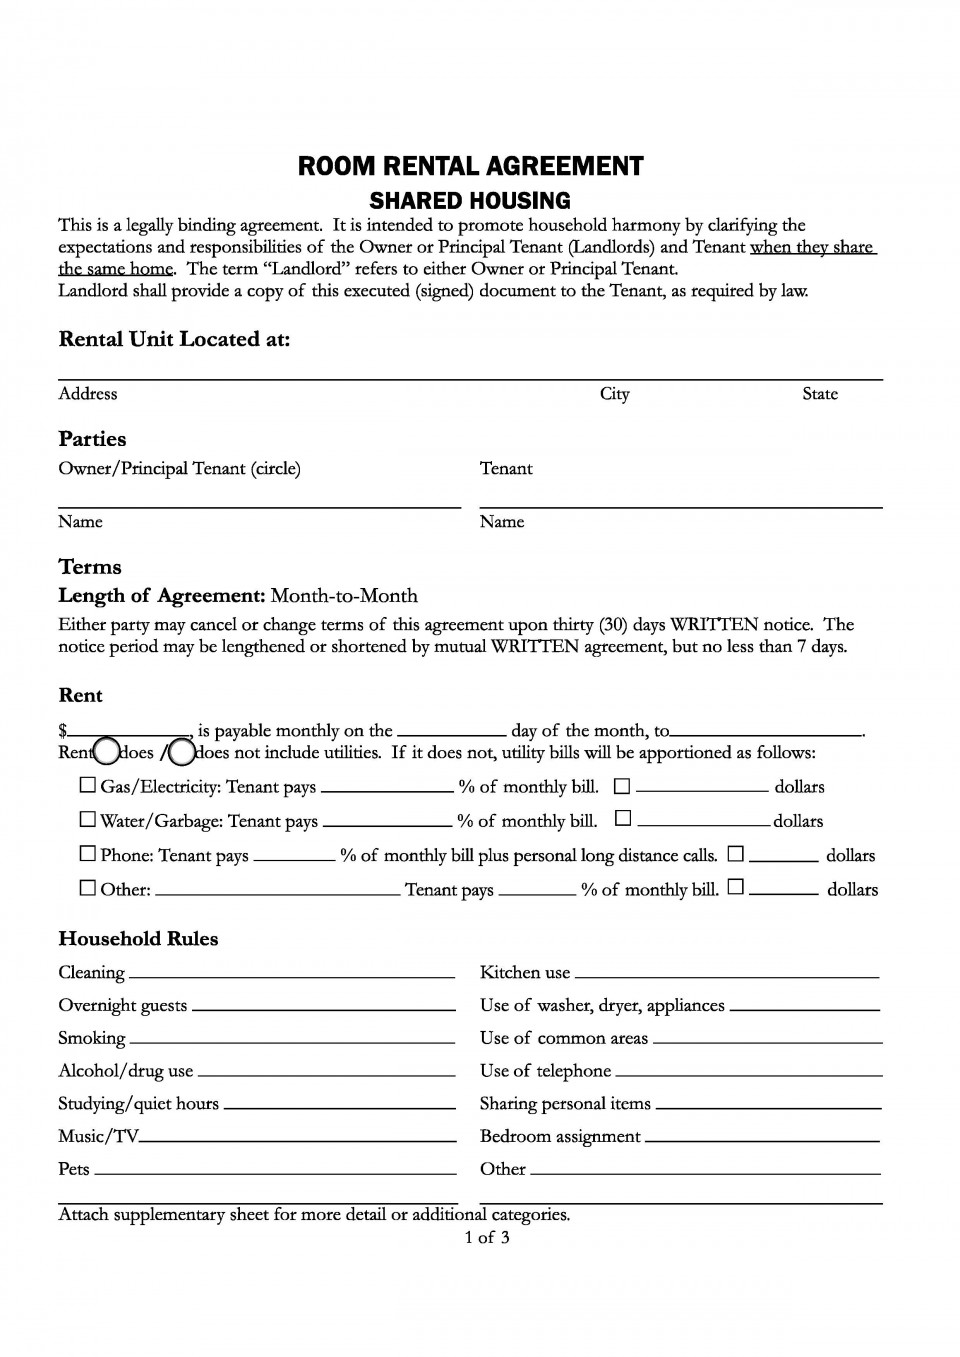 007 Breathtaking Generic Room Rental Agreement Free Highest Clarity  Printable960